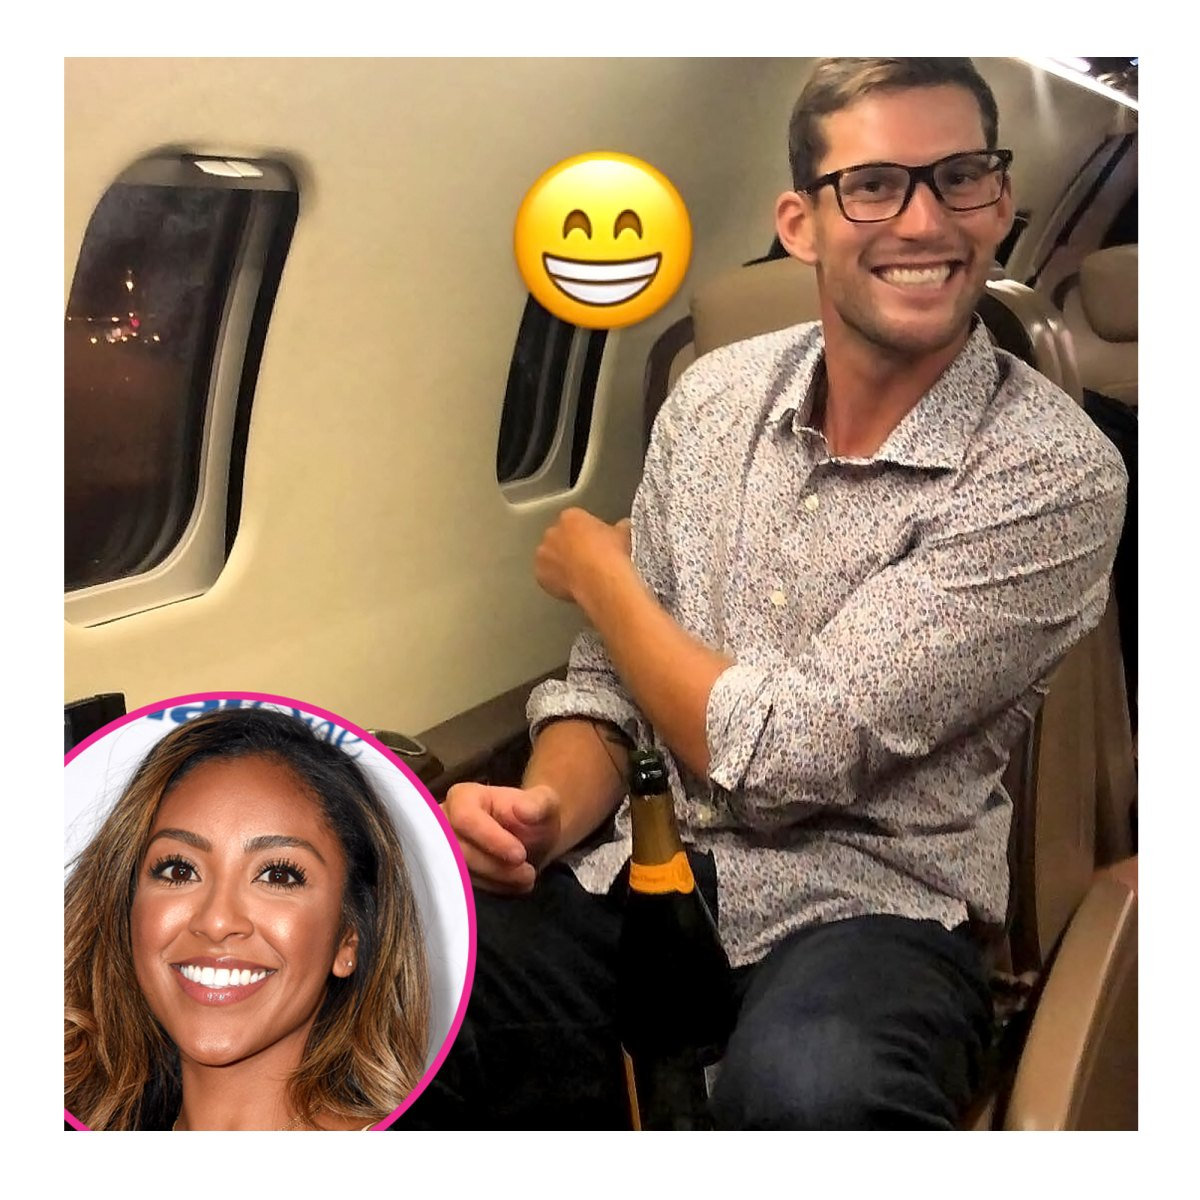 Tayshia Adams Ex Husband Josh Bourelle 5 Things To Know Последние твиты от josh potter (@j_potter). tayshia adams ex husband josh bourelle